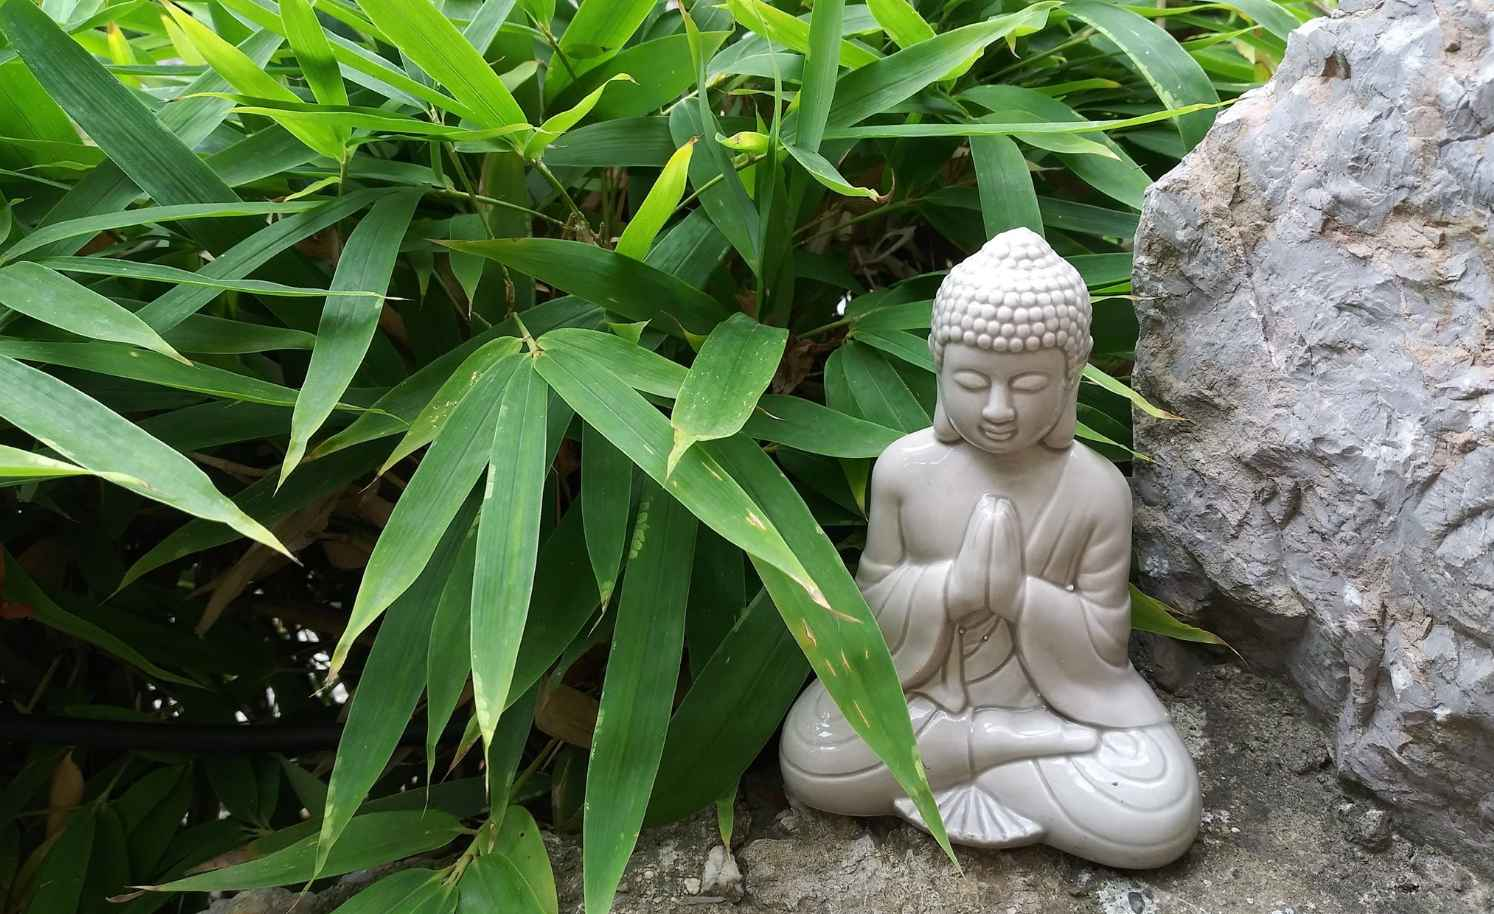 Buddha and Bamboo for good luck